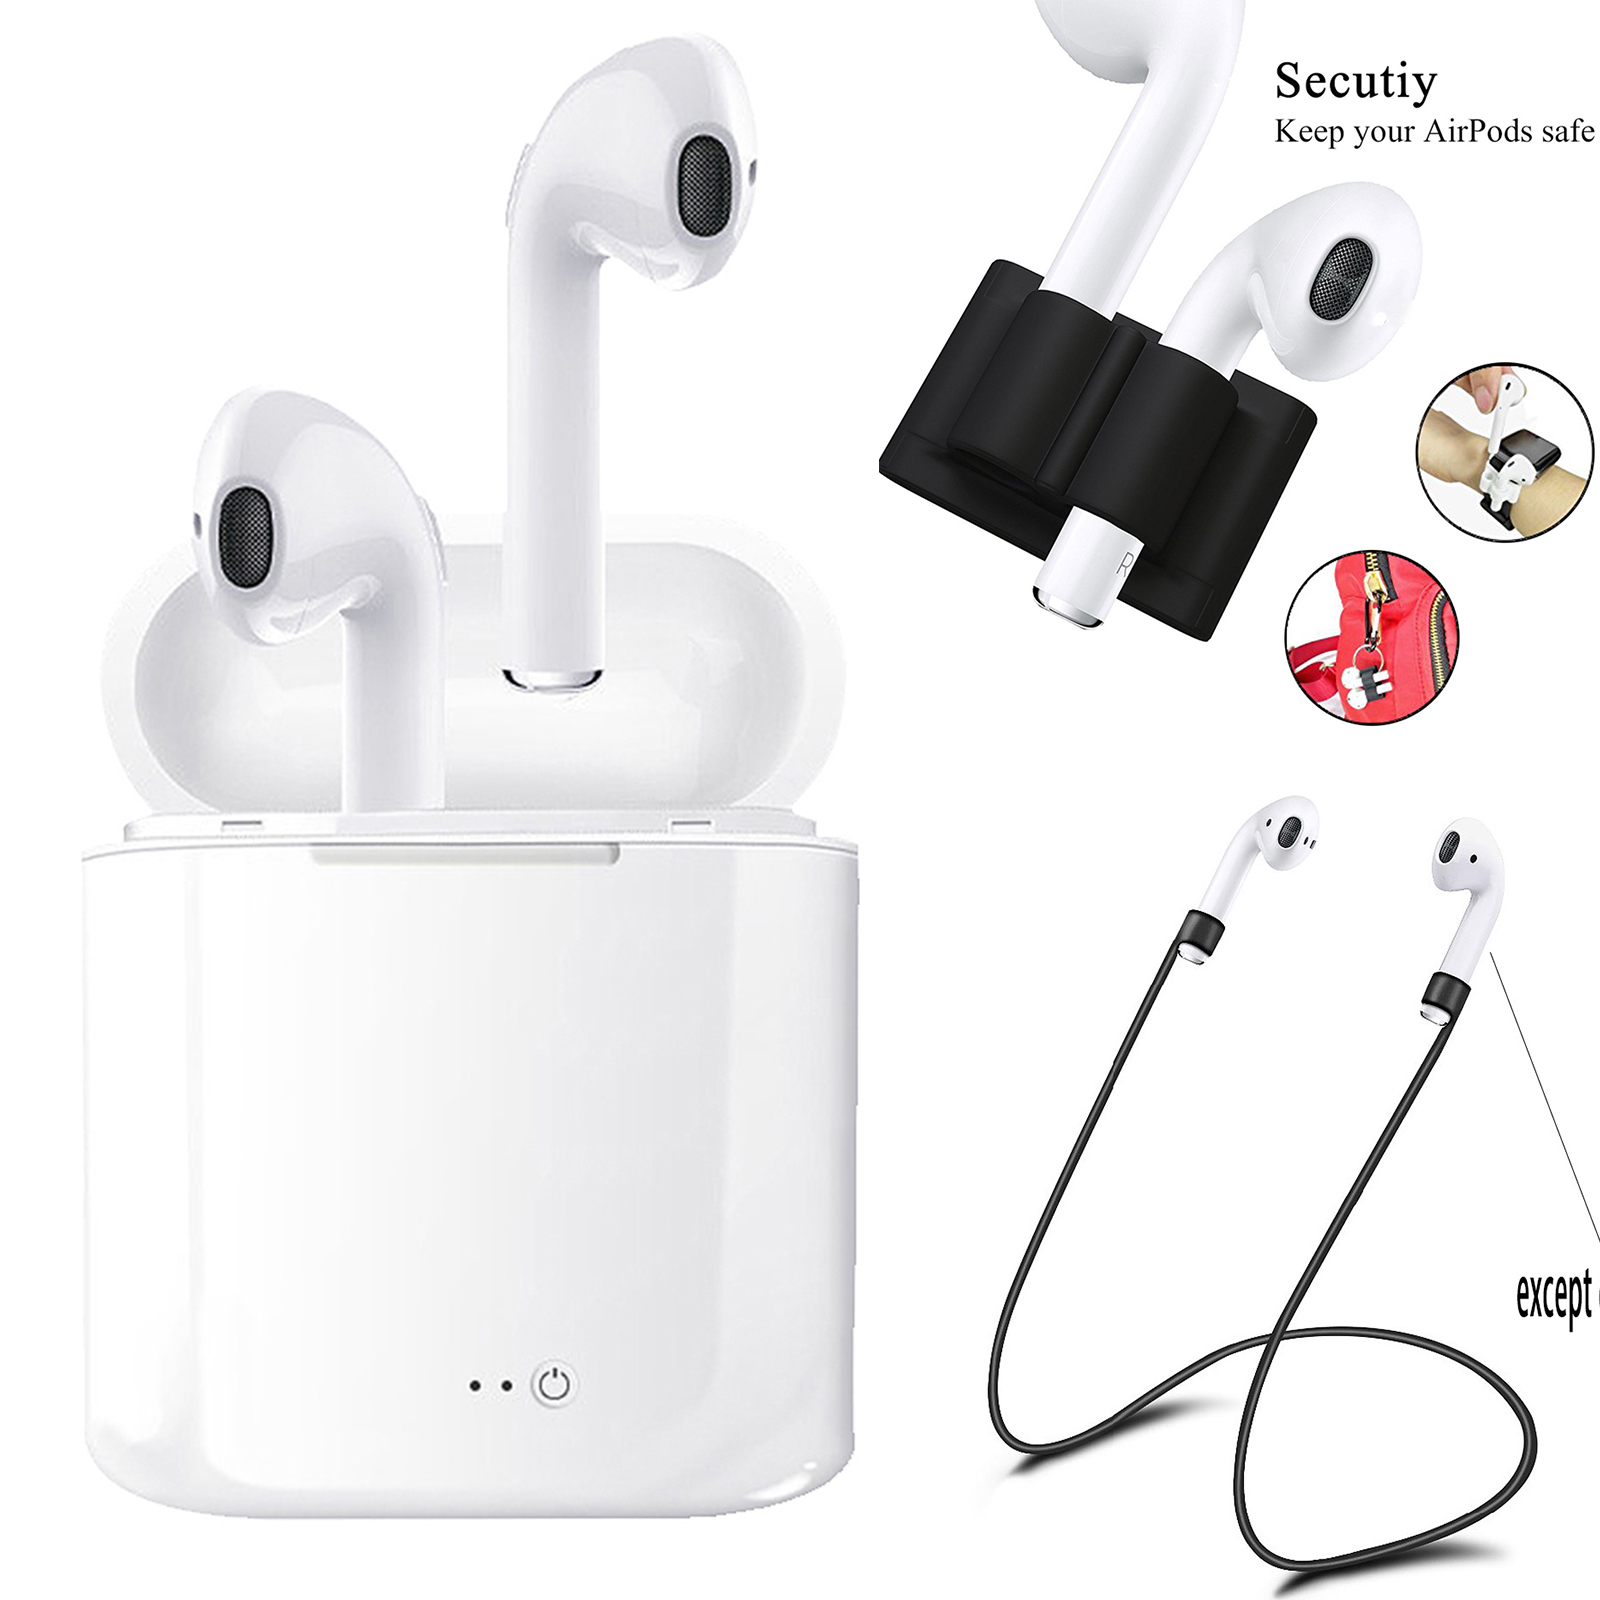 xiomi air pods I7S TWS I9S Bluetooth Earbuds Earphones Wireless Earpods Headset for Iphone Android 6 7 8 X Earphone ifans mini i9s twins earbuds mini wireless bluetooth earphones i7s tws air headsets pods stereo headphones for iphone android pc